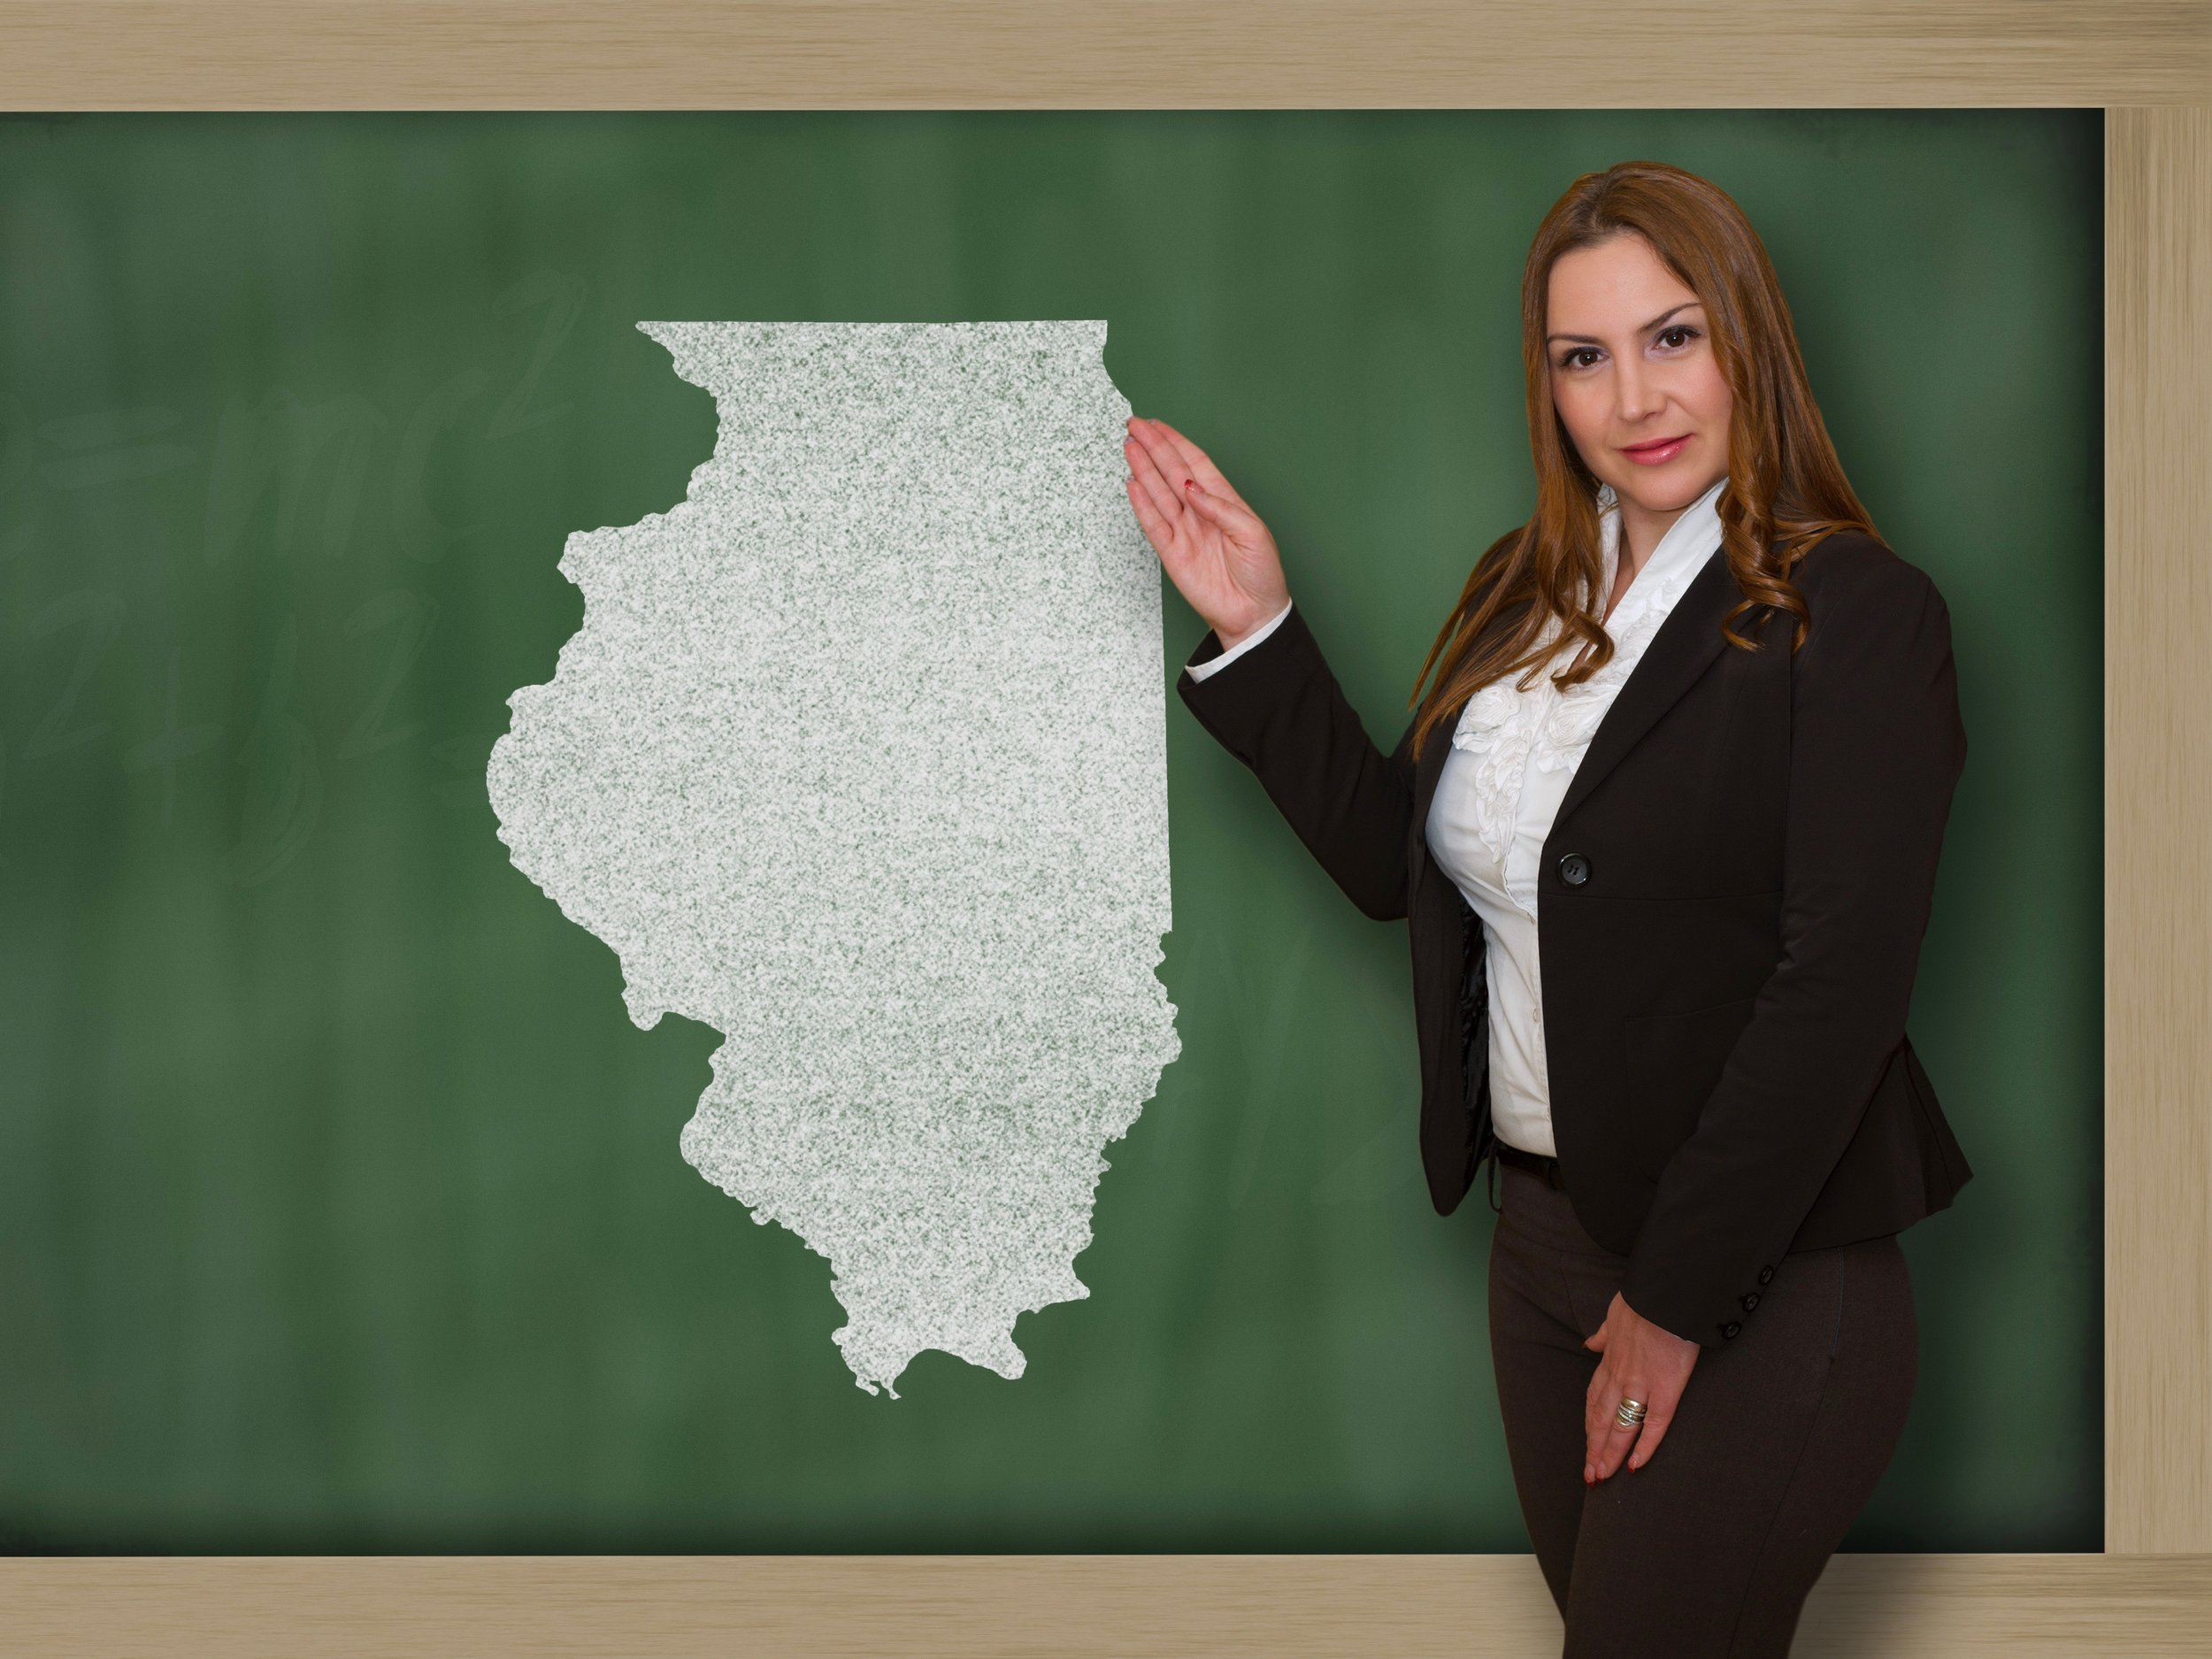 Like much of the nation, Illinois is reporting a teacher shortage. (Shutterstock)